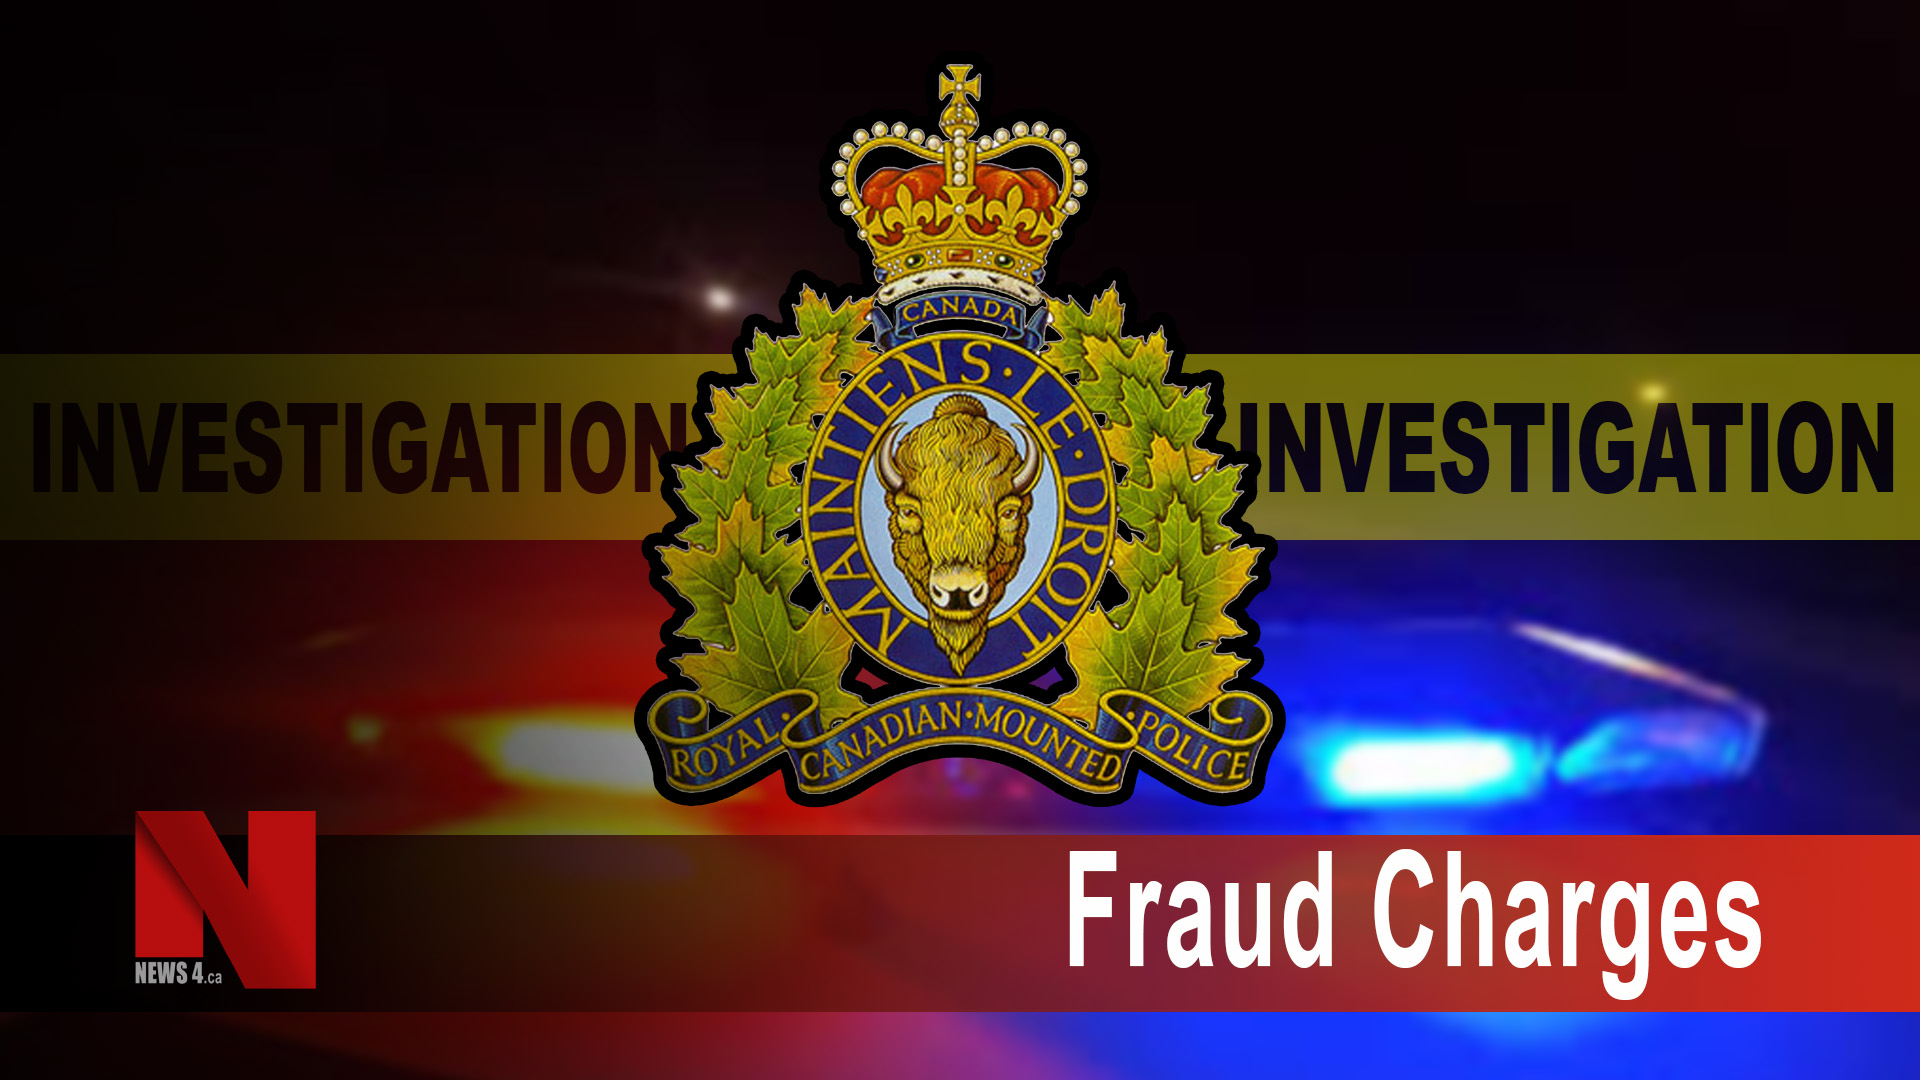 Woman charged with fraud after two year investigation